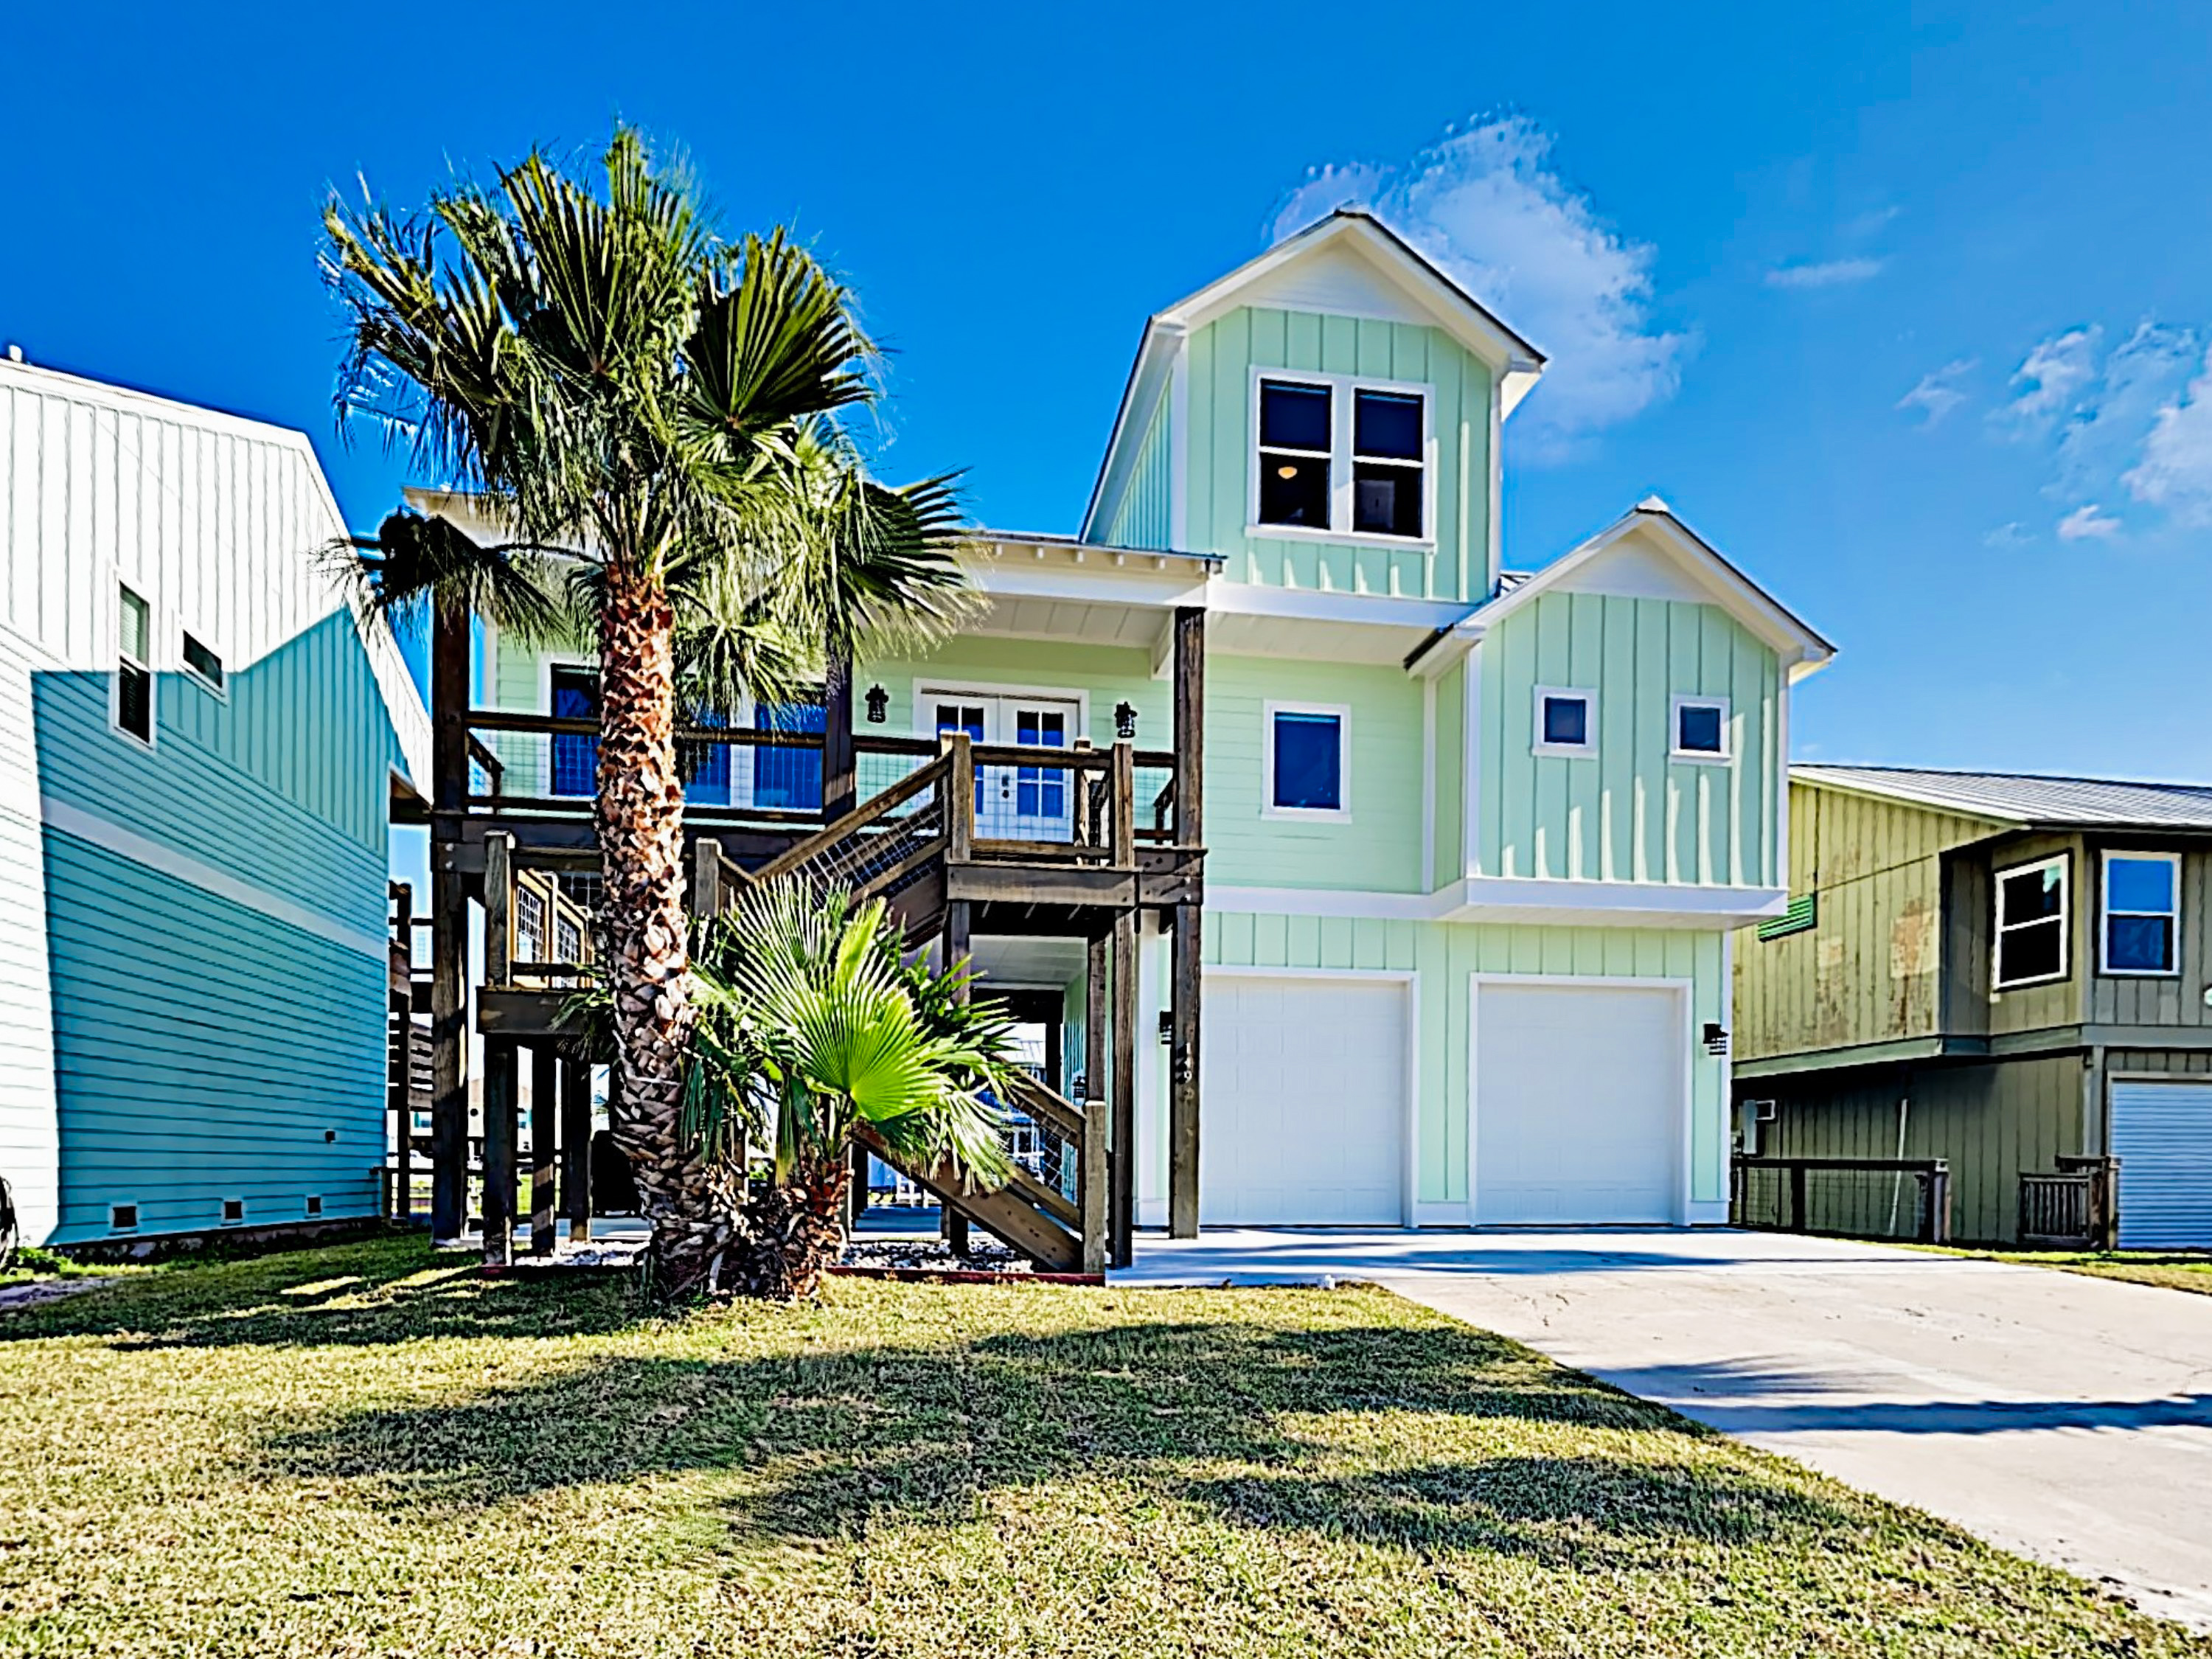 City By The Sea TX Vacation Rental Welcome to City